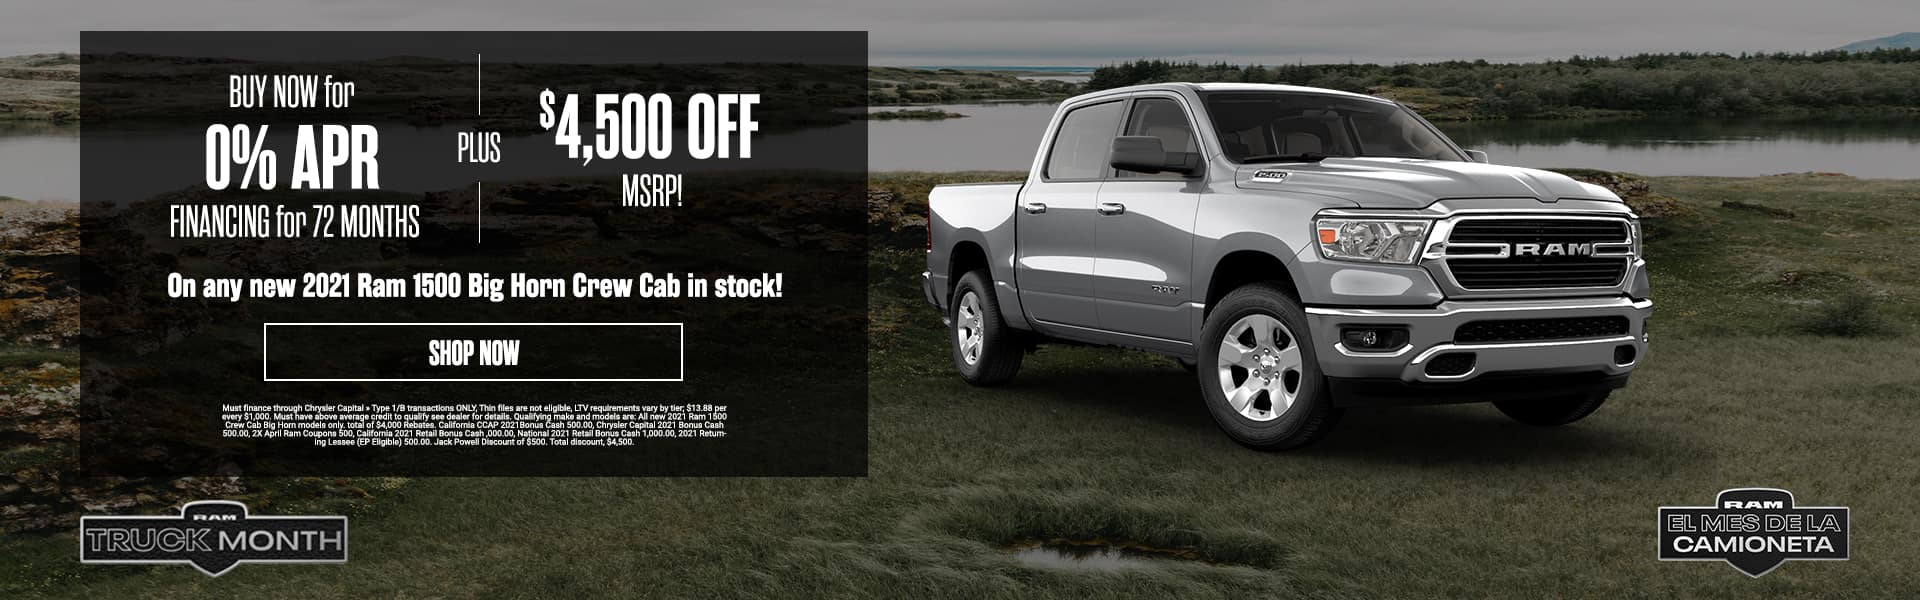 BUY NOW for 0% APR FINANCING for 72 MONTHS plus $4,500 OFF MSRP!